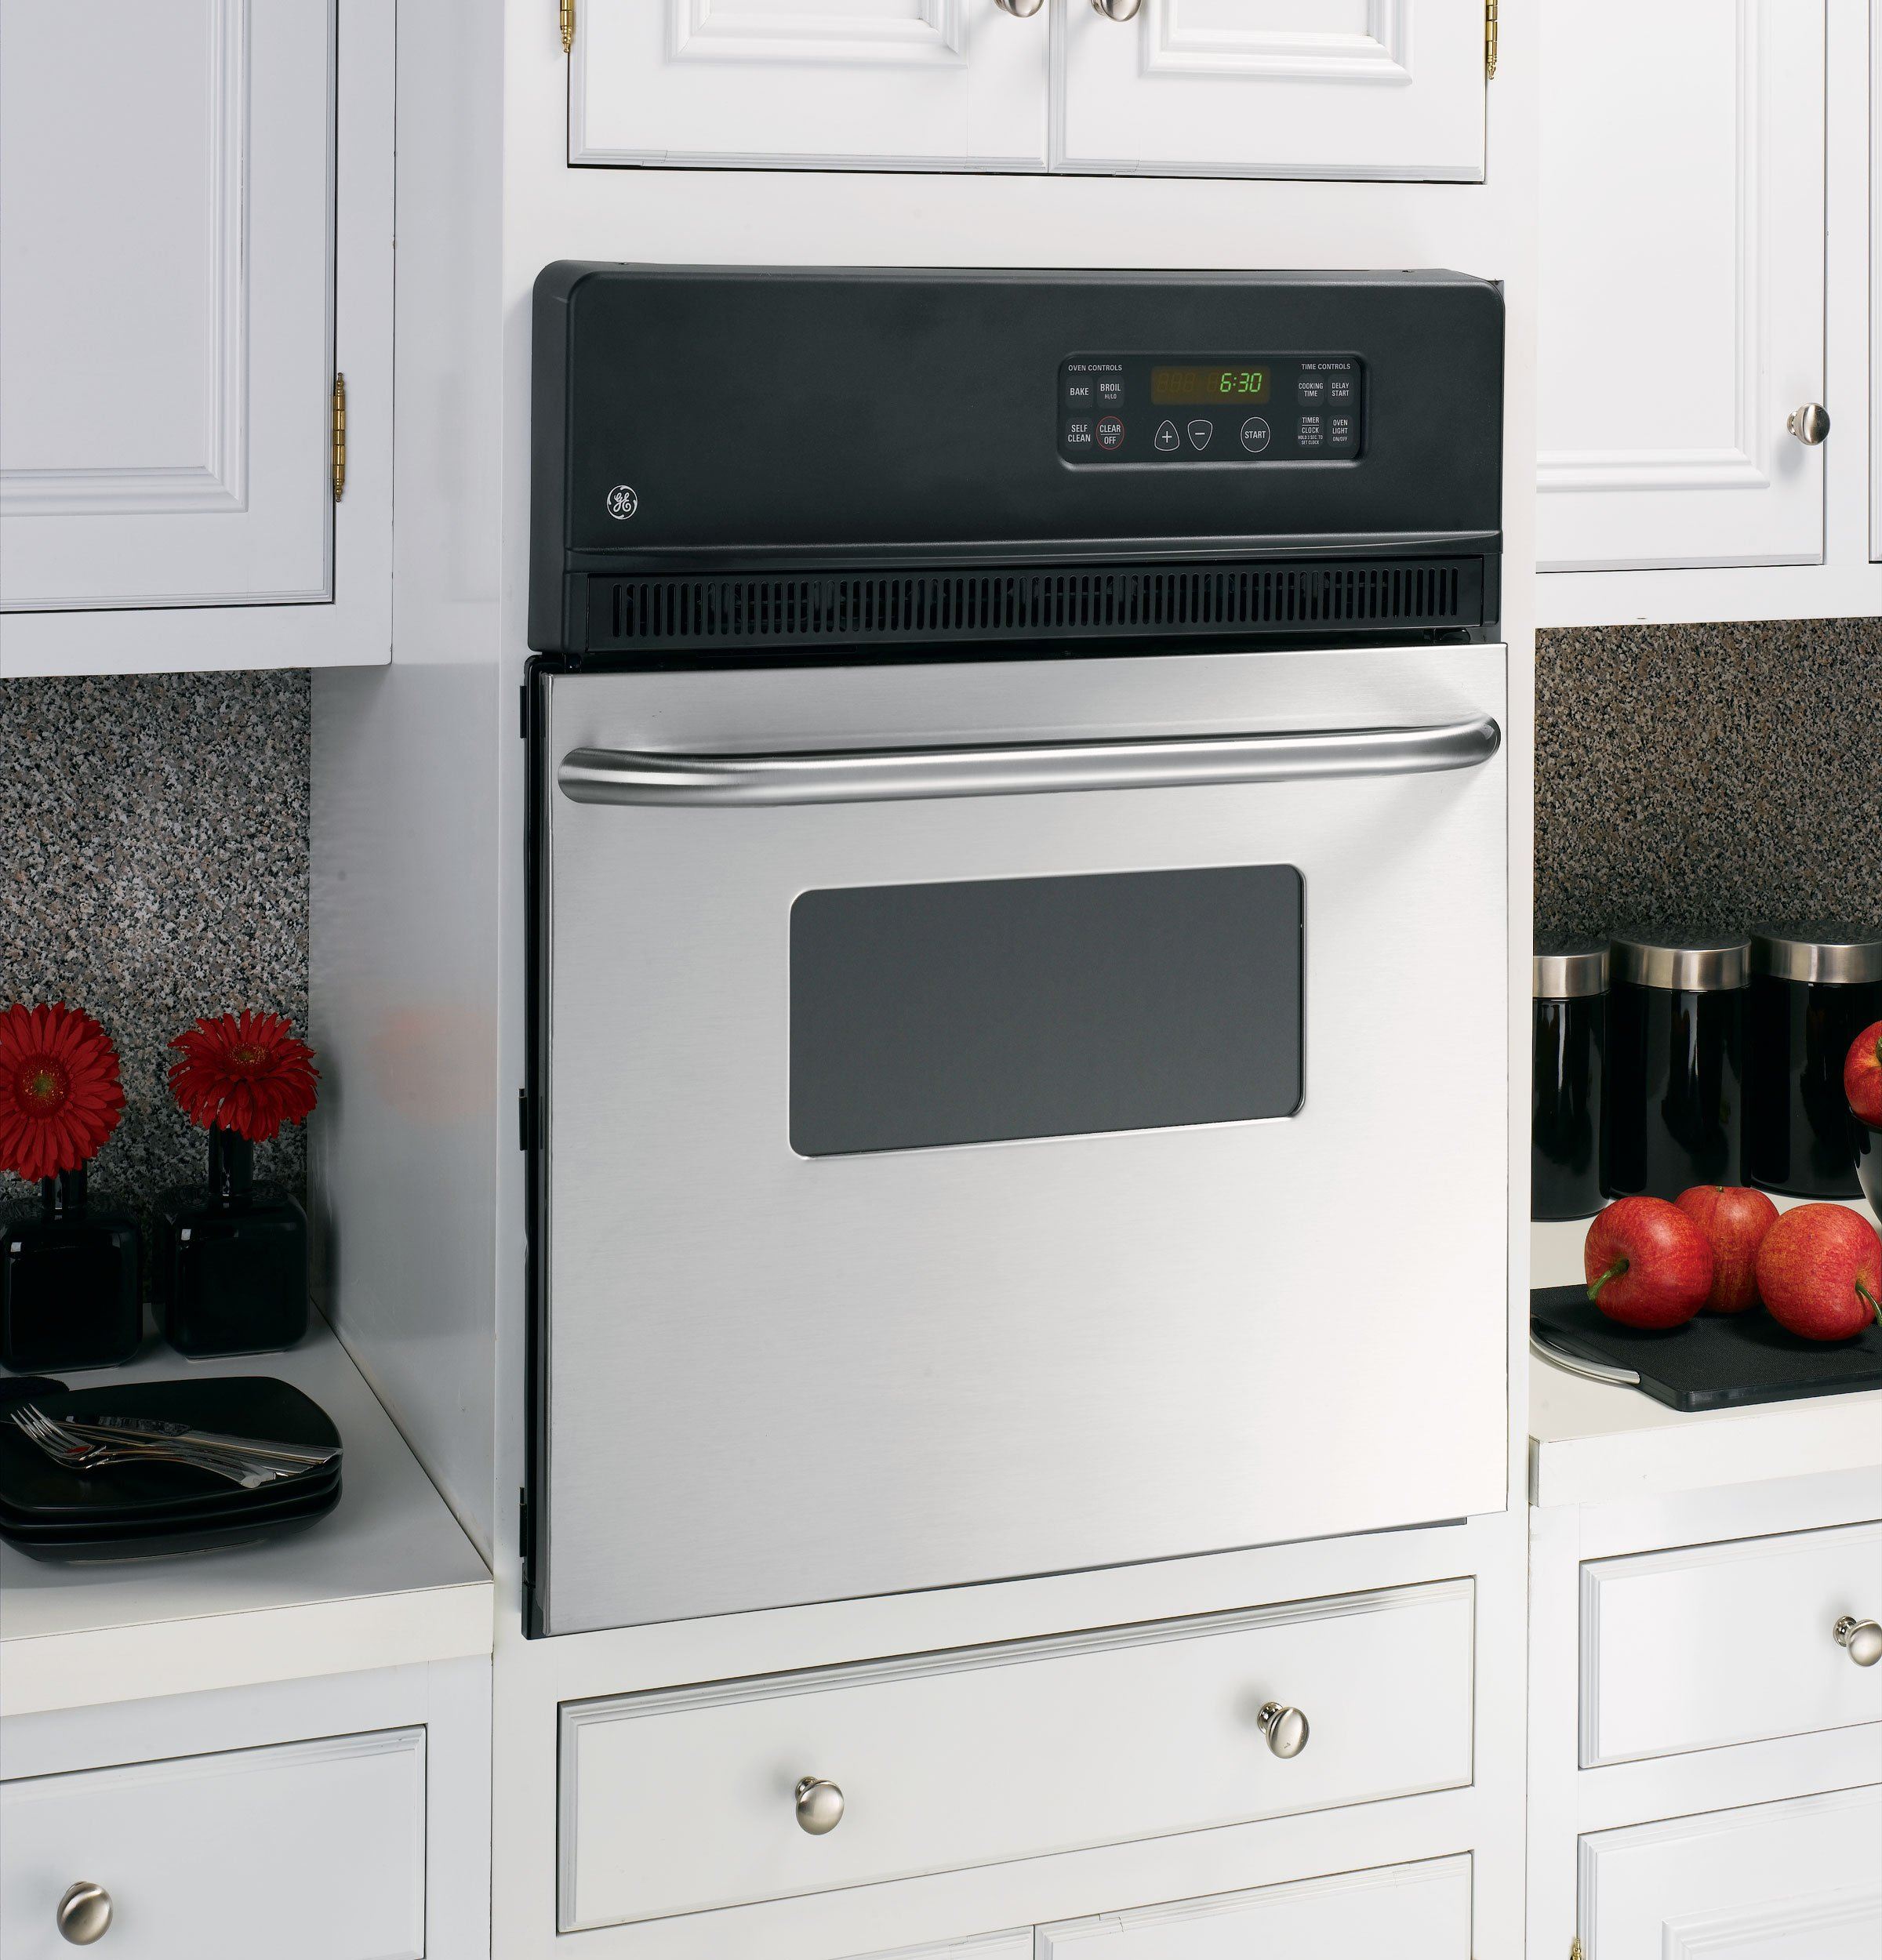 GE JRP20SKSS 24'' 2.7 cu. ft. Total Capacity Electric Single Wall Oven in Stainless Steel